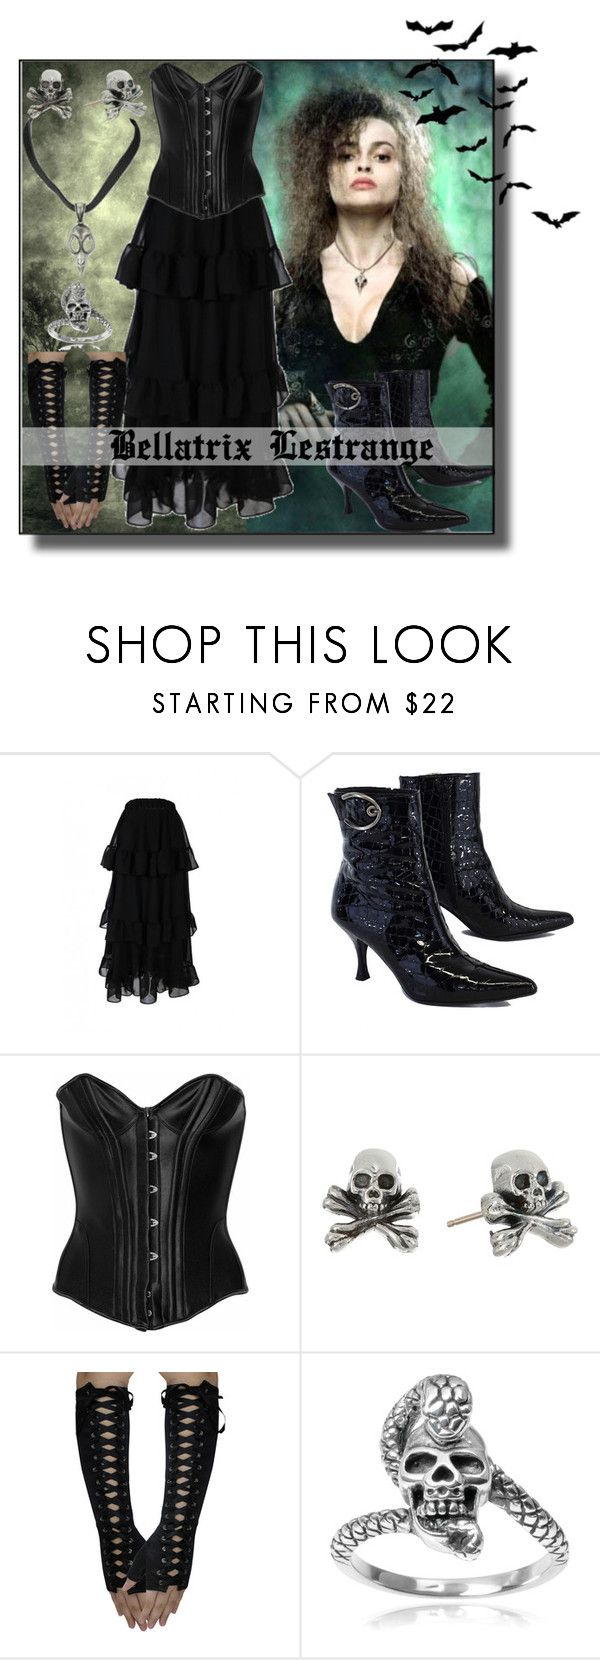 """Gothic Look #Bellatrix Lestrange"" by asiyaoves ❤ liked on Polyvore featuring Stuart Weitzman, Agent Provocateur, King Baby Studio, Tressa, Anger, BellatrixLestrange and WorldGothDay"